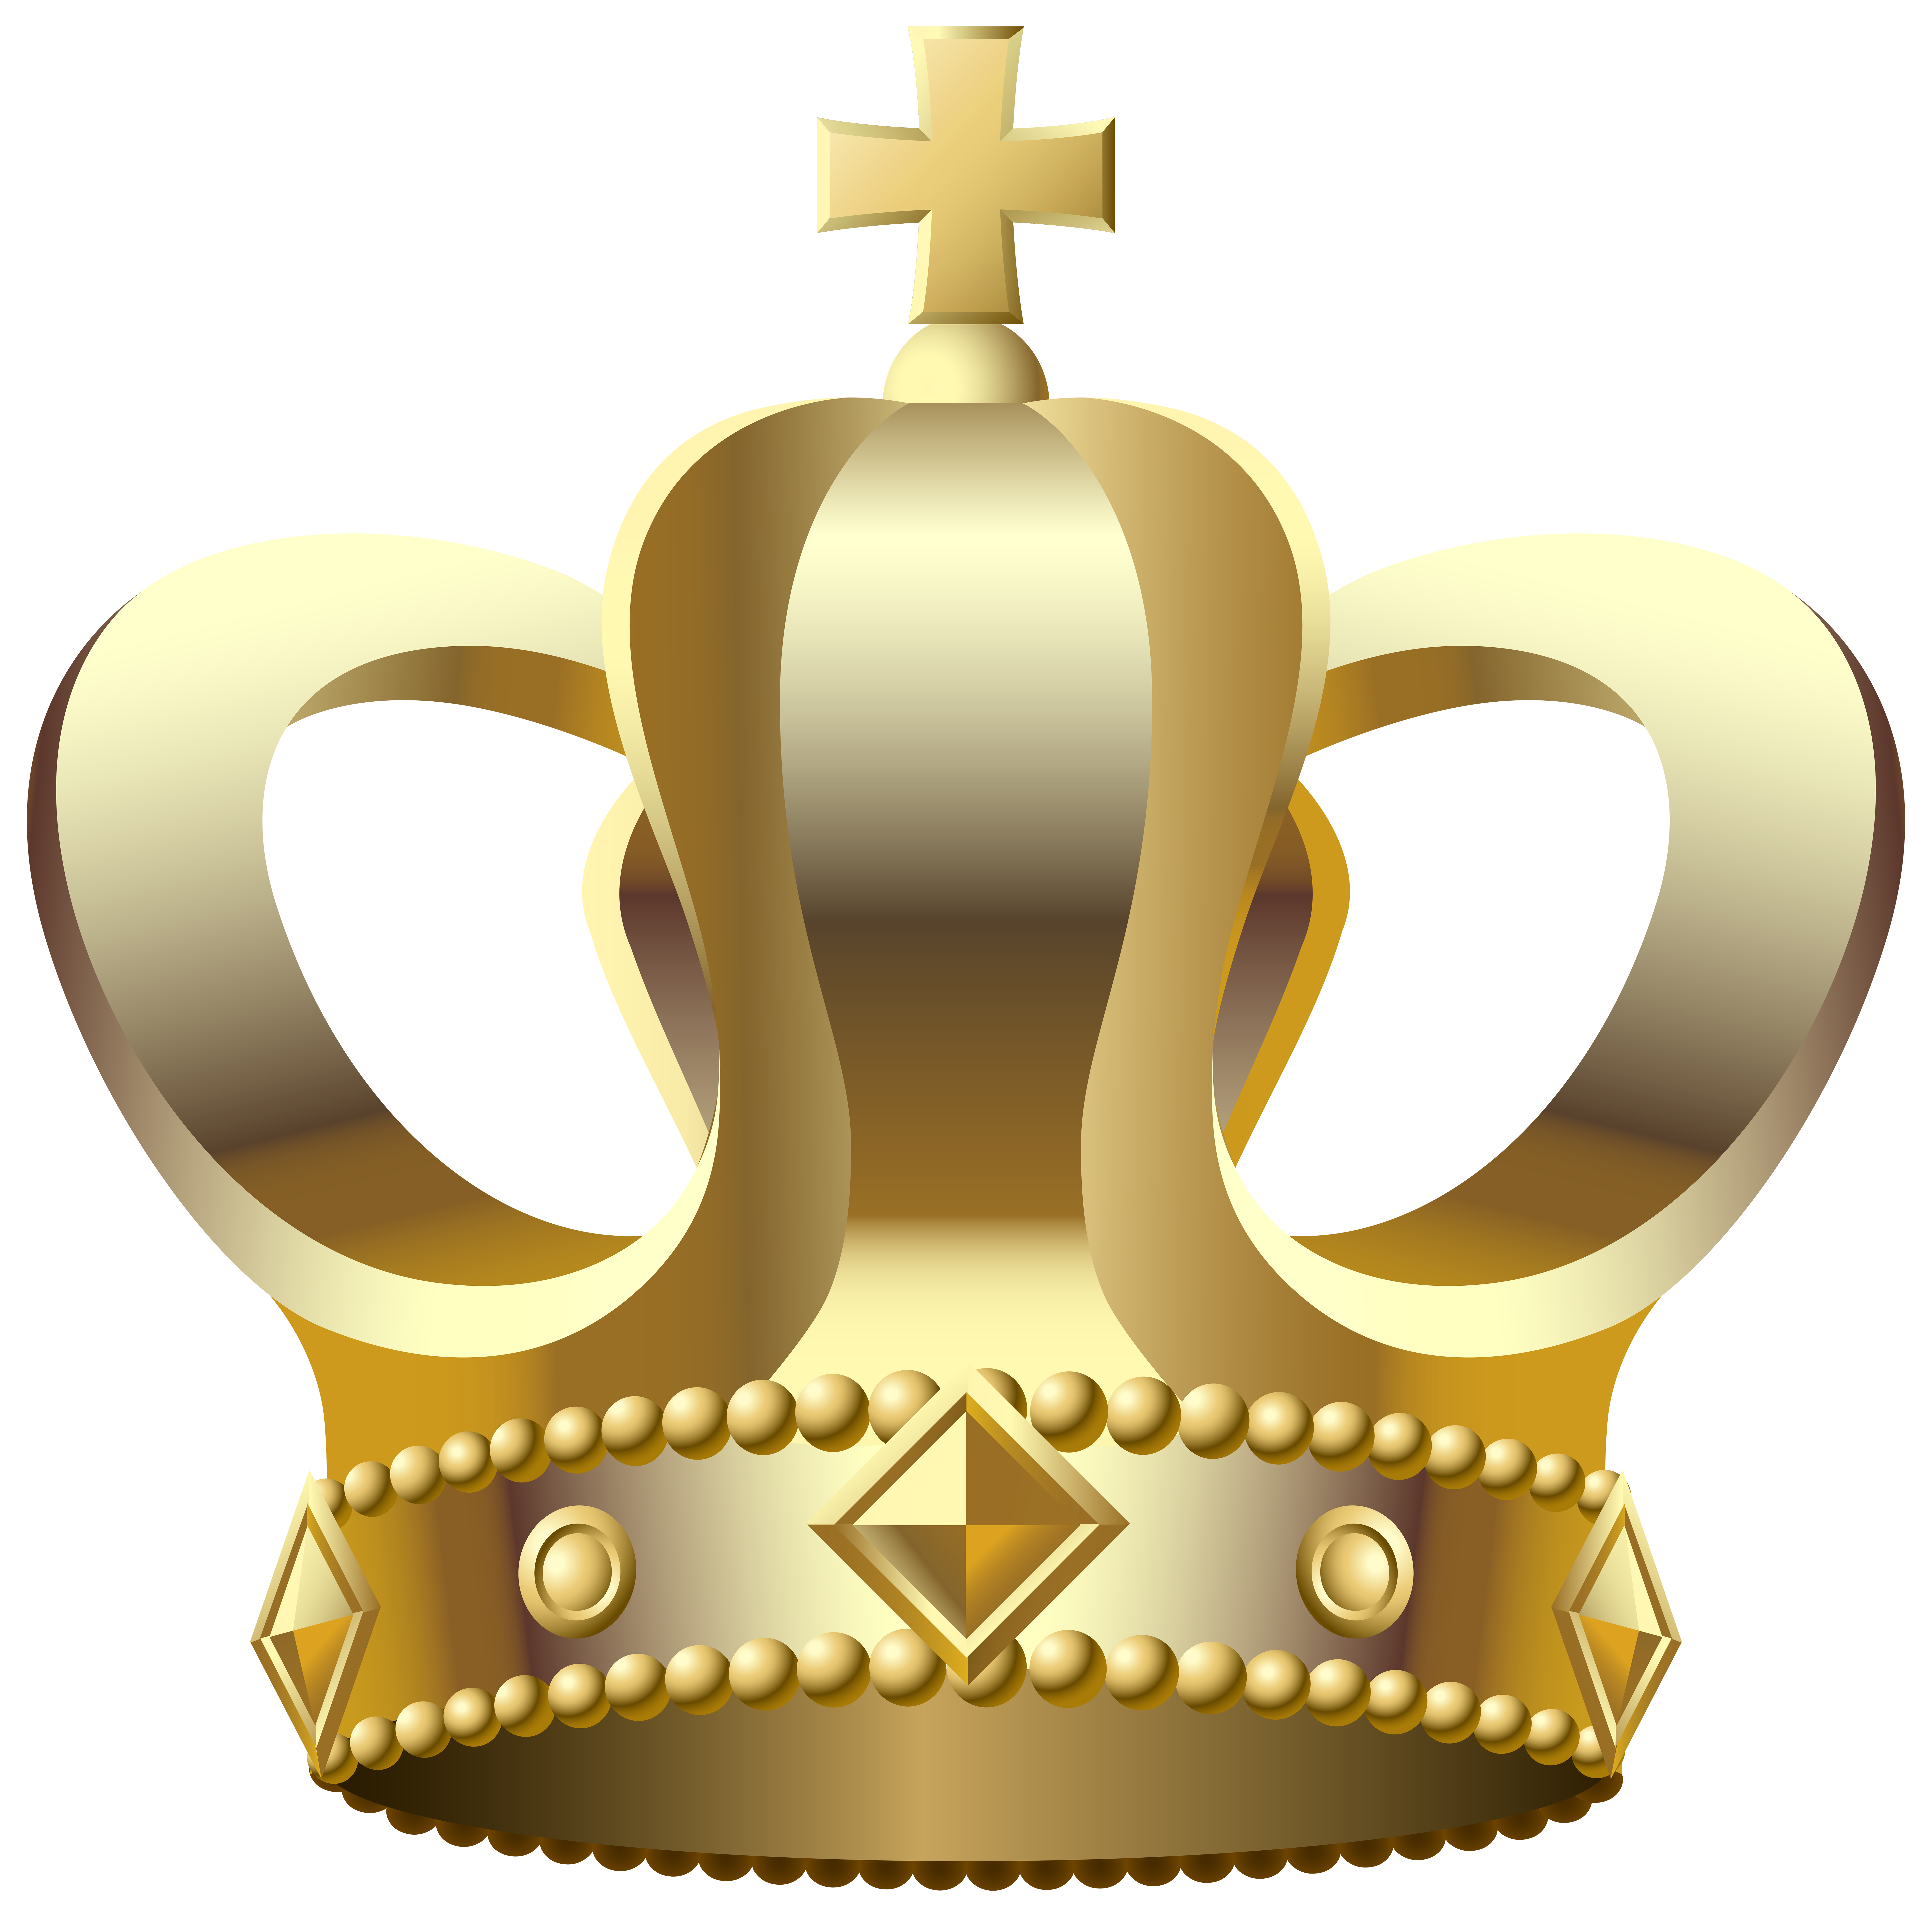 Pin by Aleks on Значки | Pinterest | Gold crown, Art images and Clip art